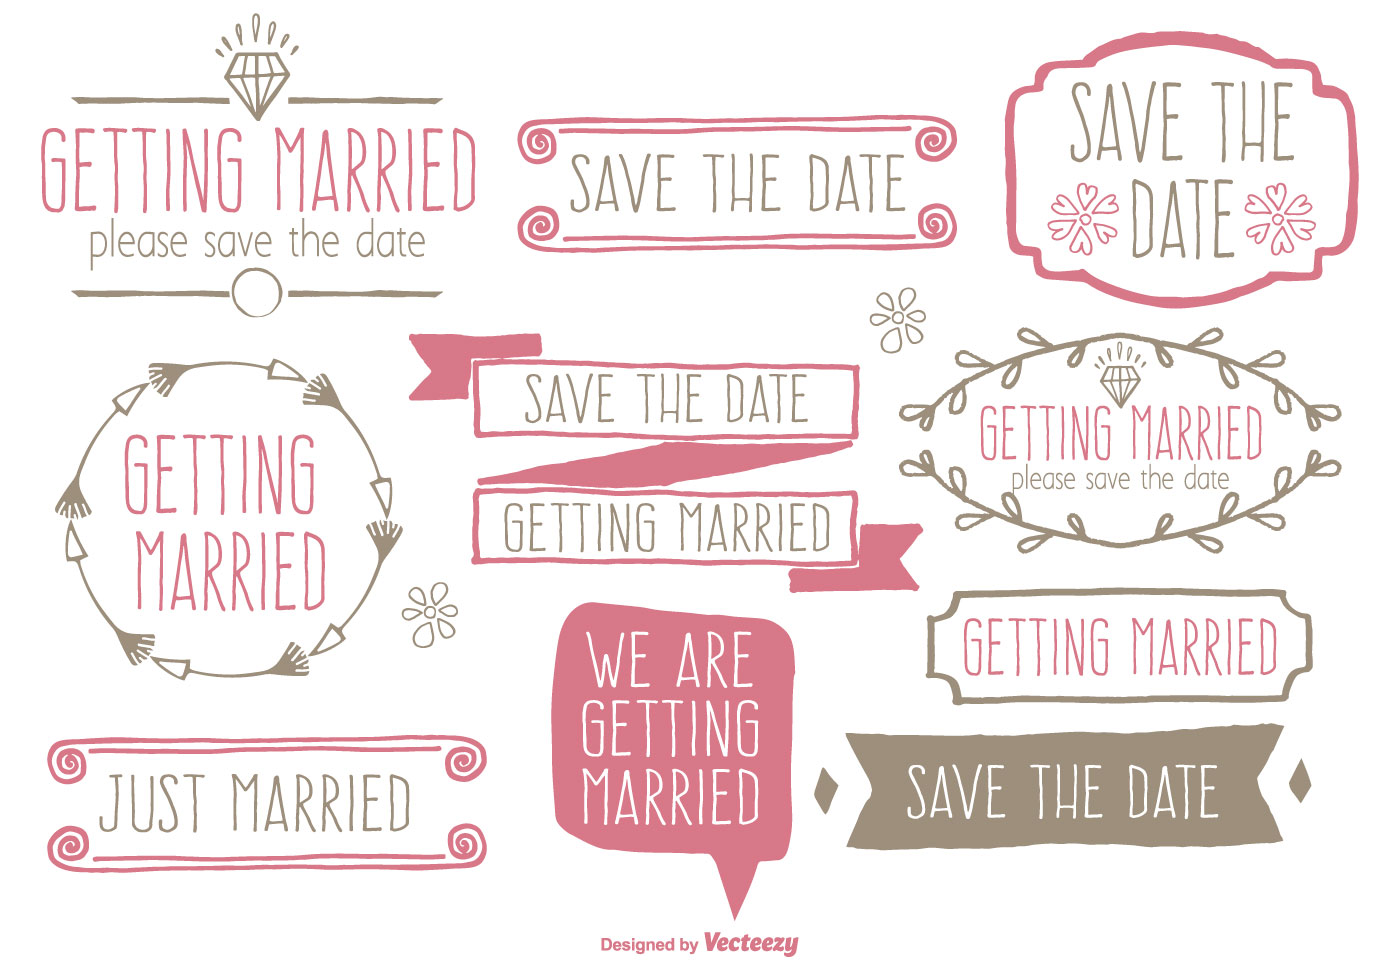 cute hand drawn style save the date and wedding label set download free vector art stock graphics images